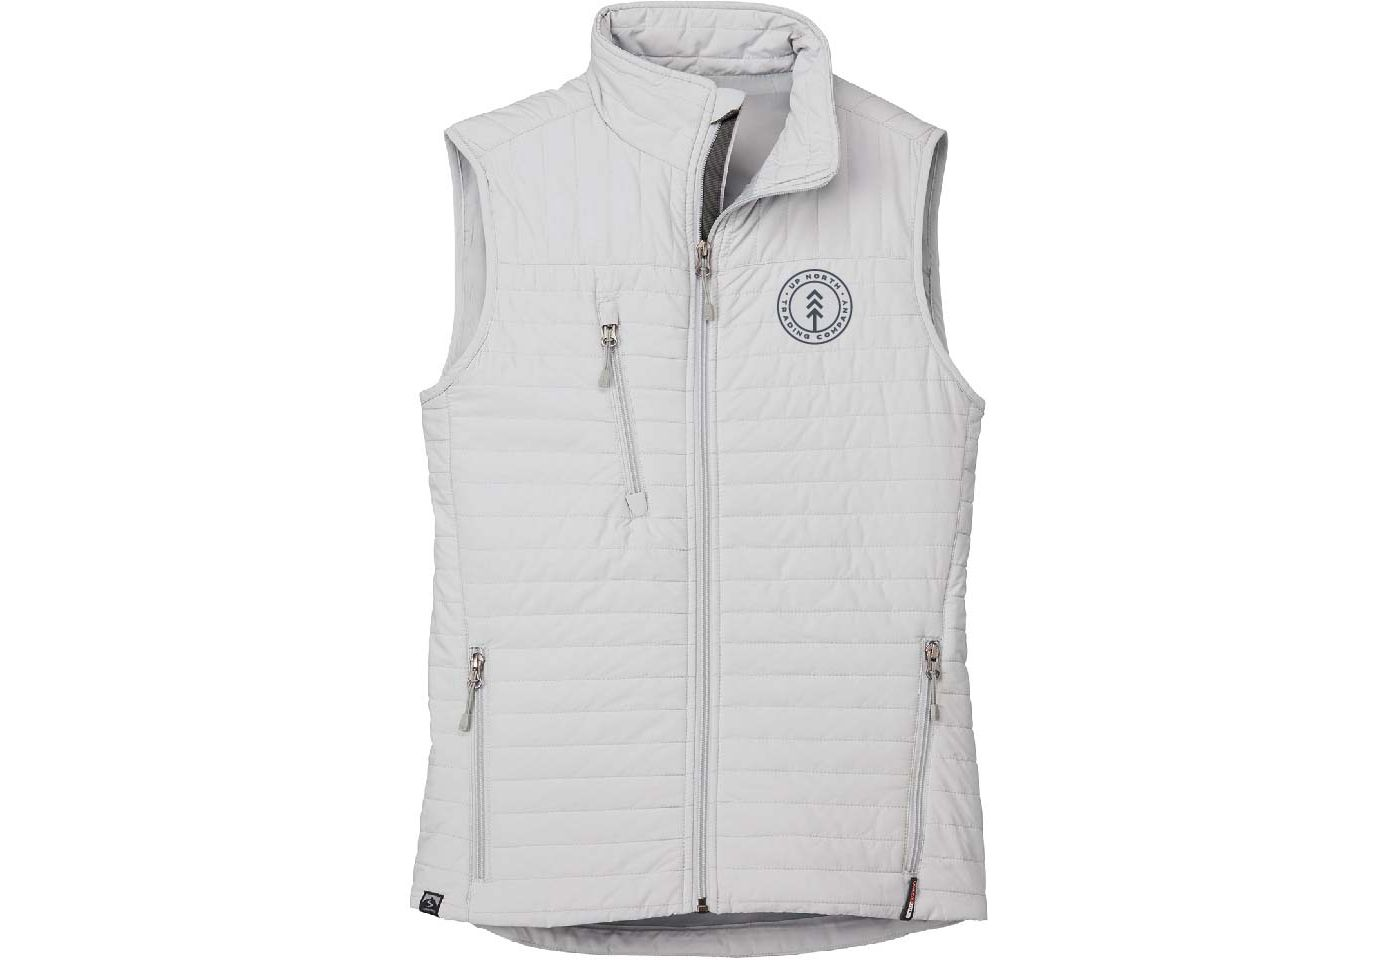 Up North Trading Company Women's Platinum Circle Insulated Vest